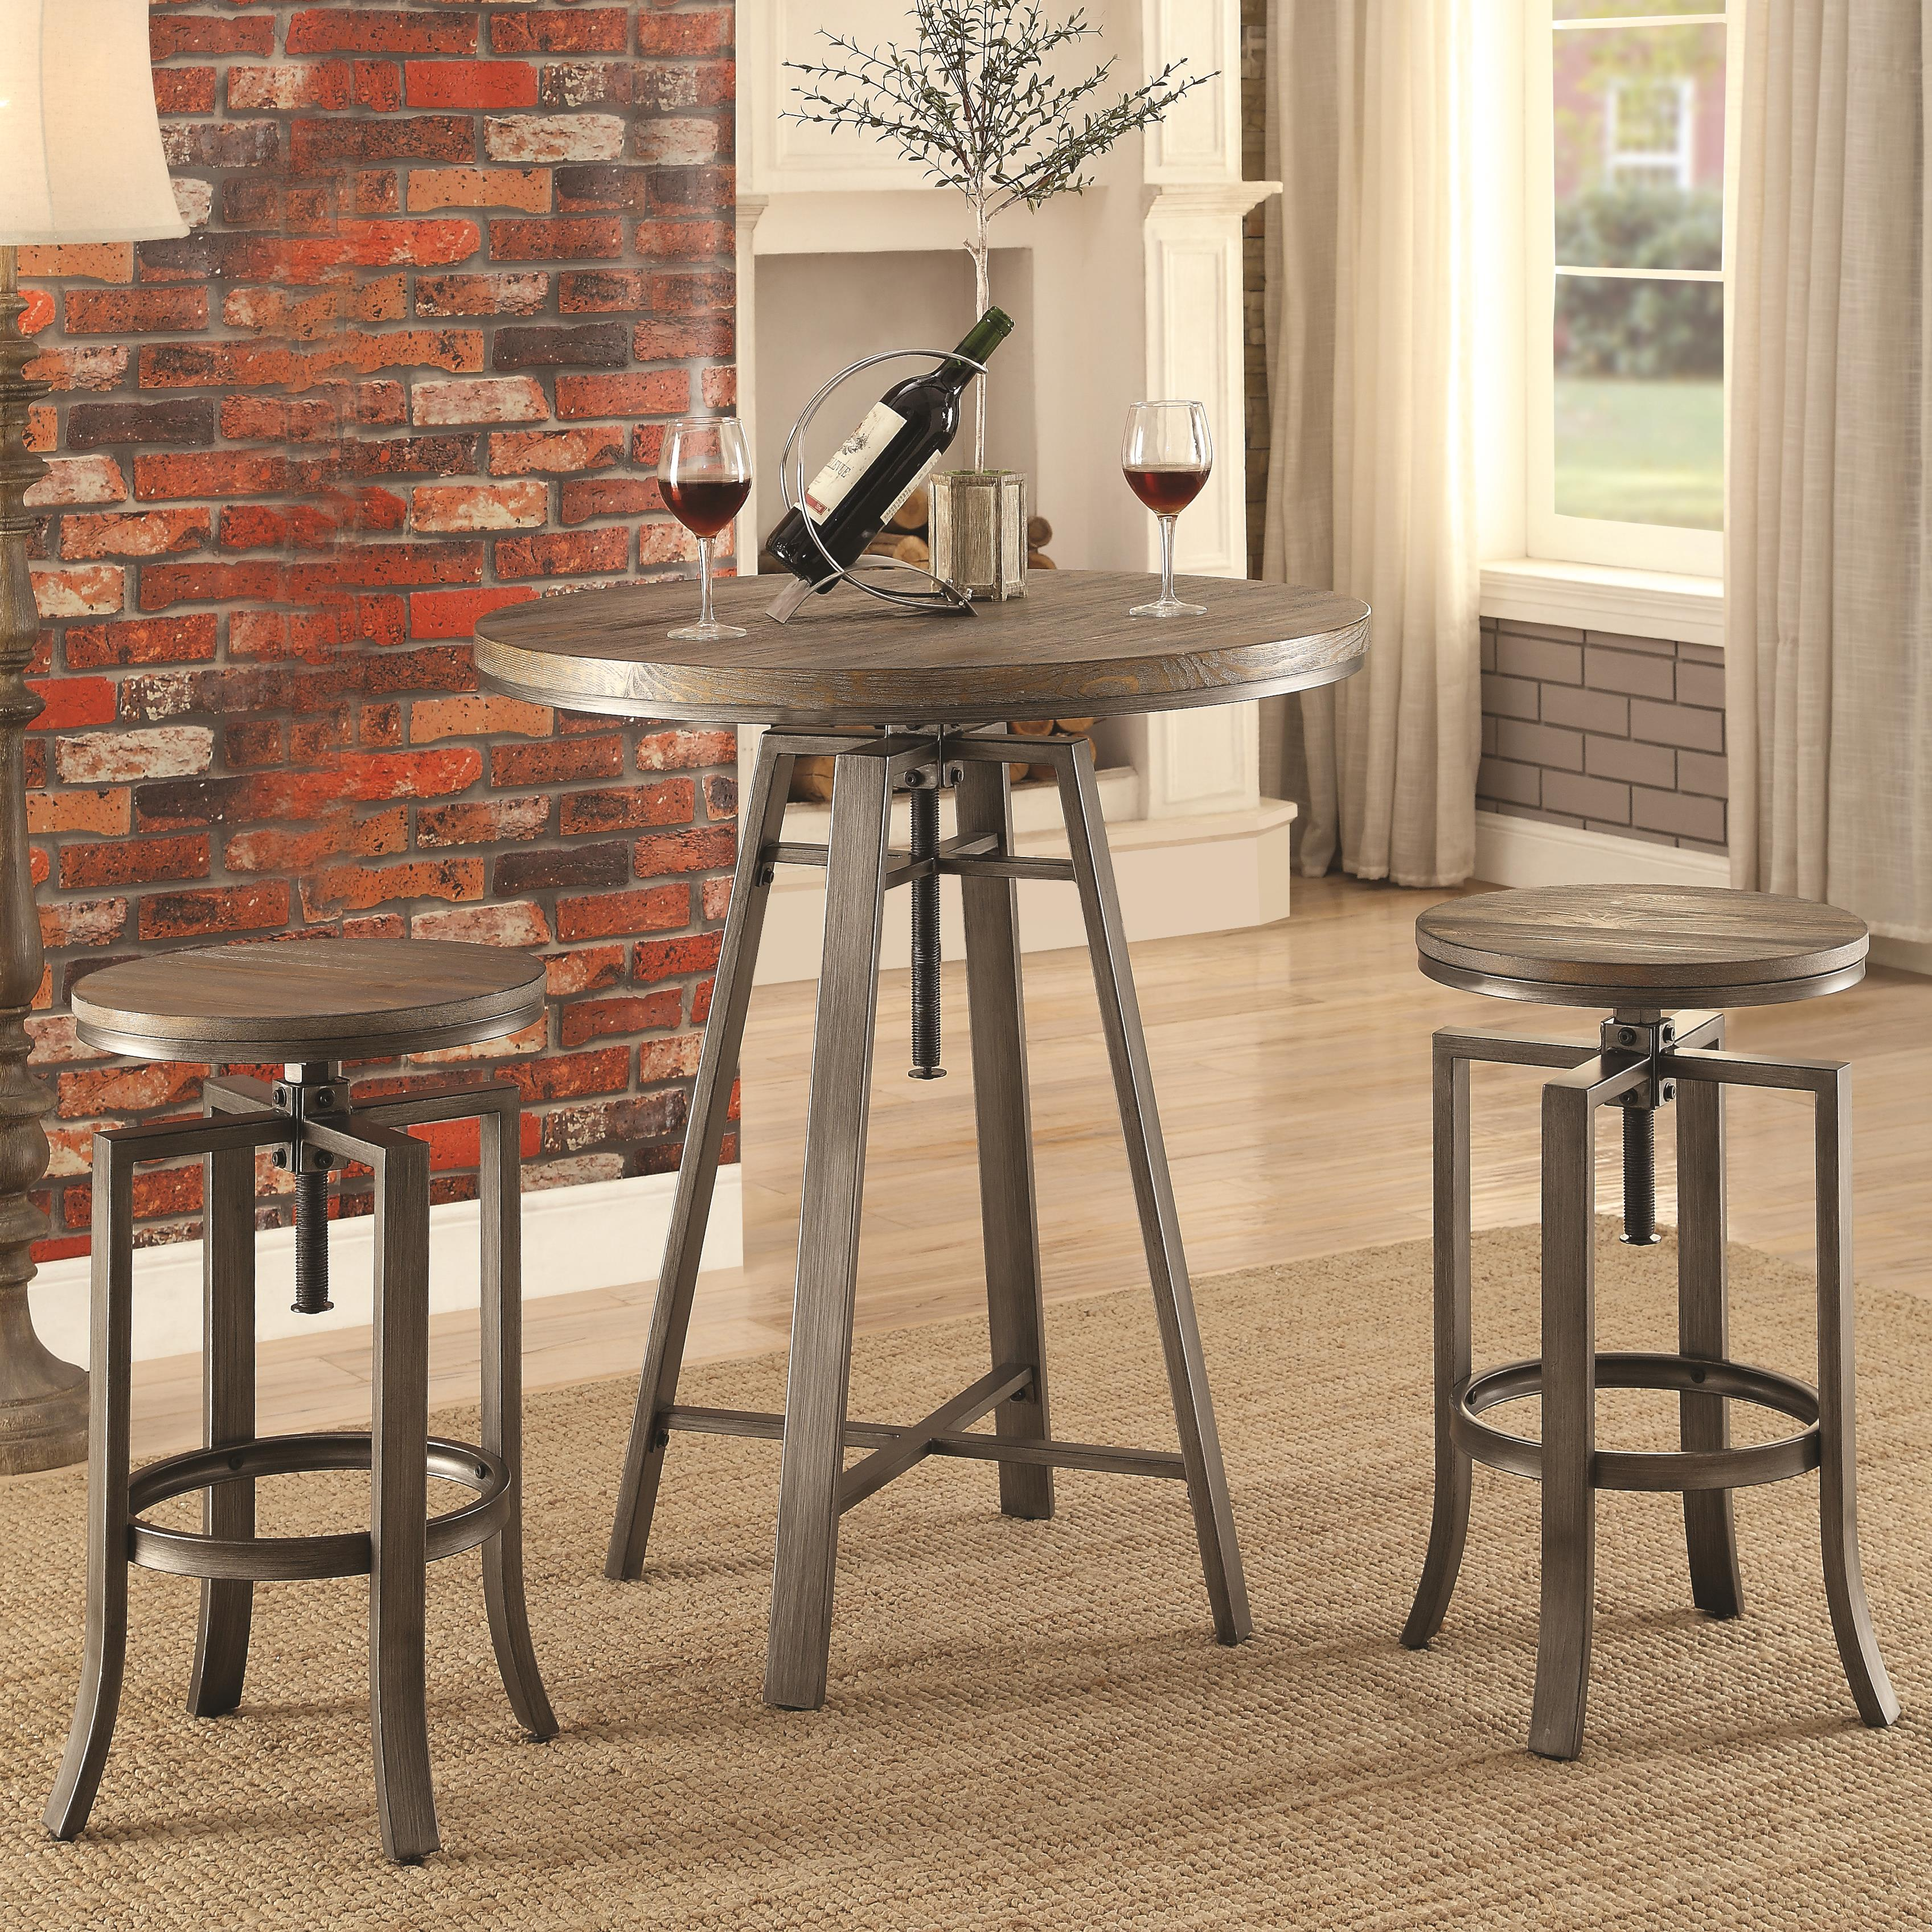 10181 3 Pc Adjustable Pub Table Set by Coaster at Rooms for Less